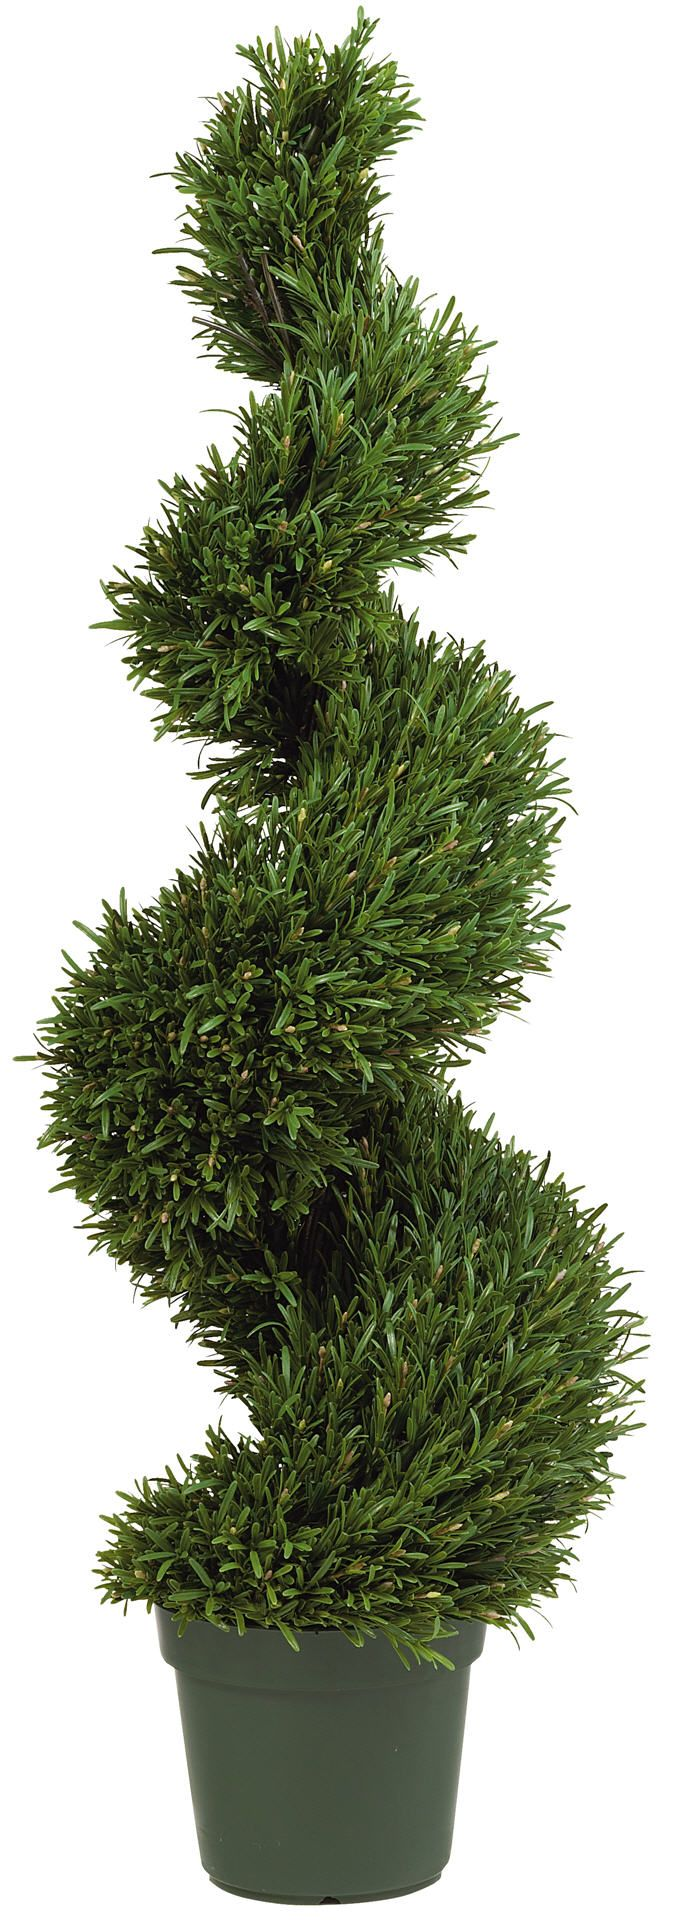 Icon of fresh real topiary trees exteriors pinterest for Garden topiary trees